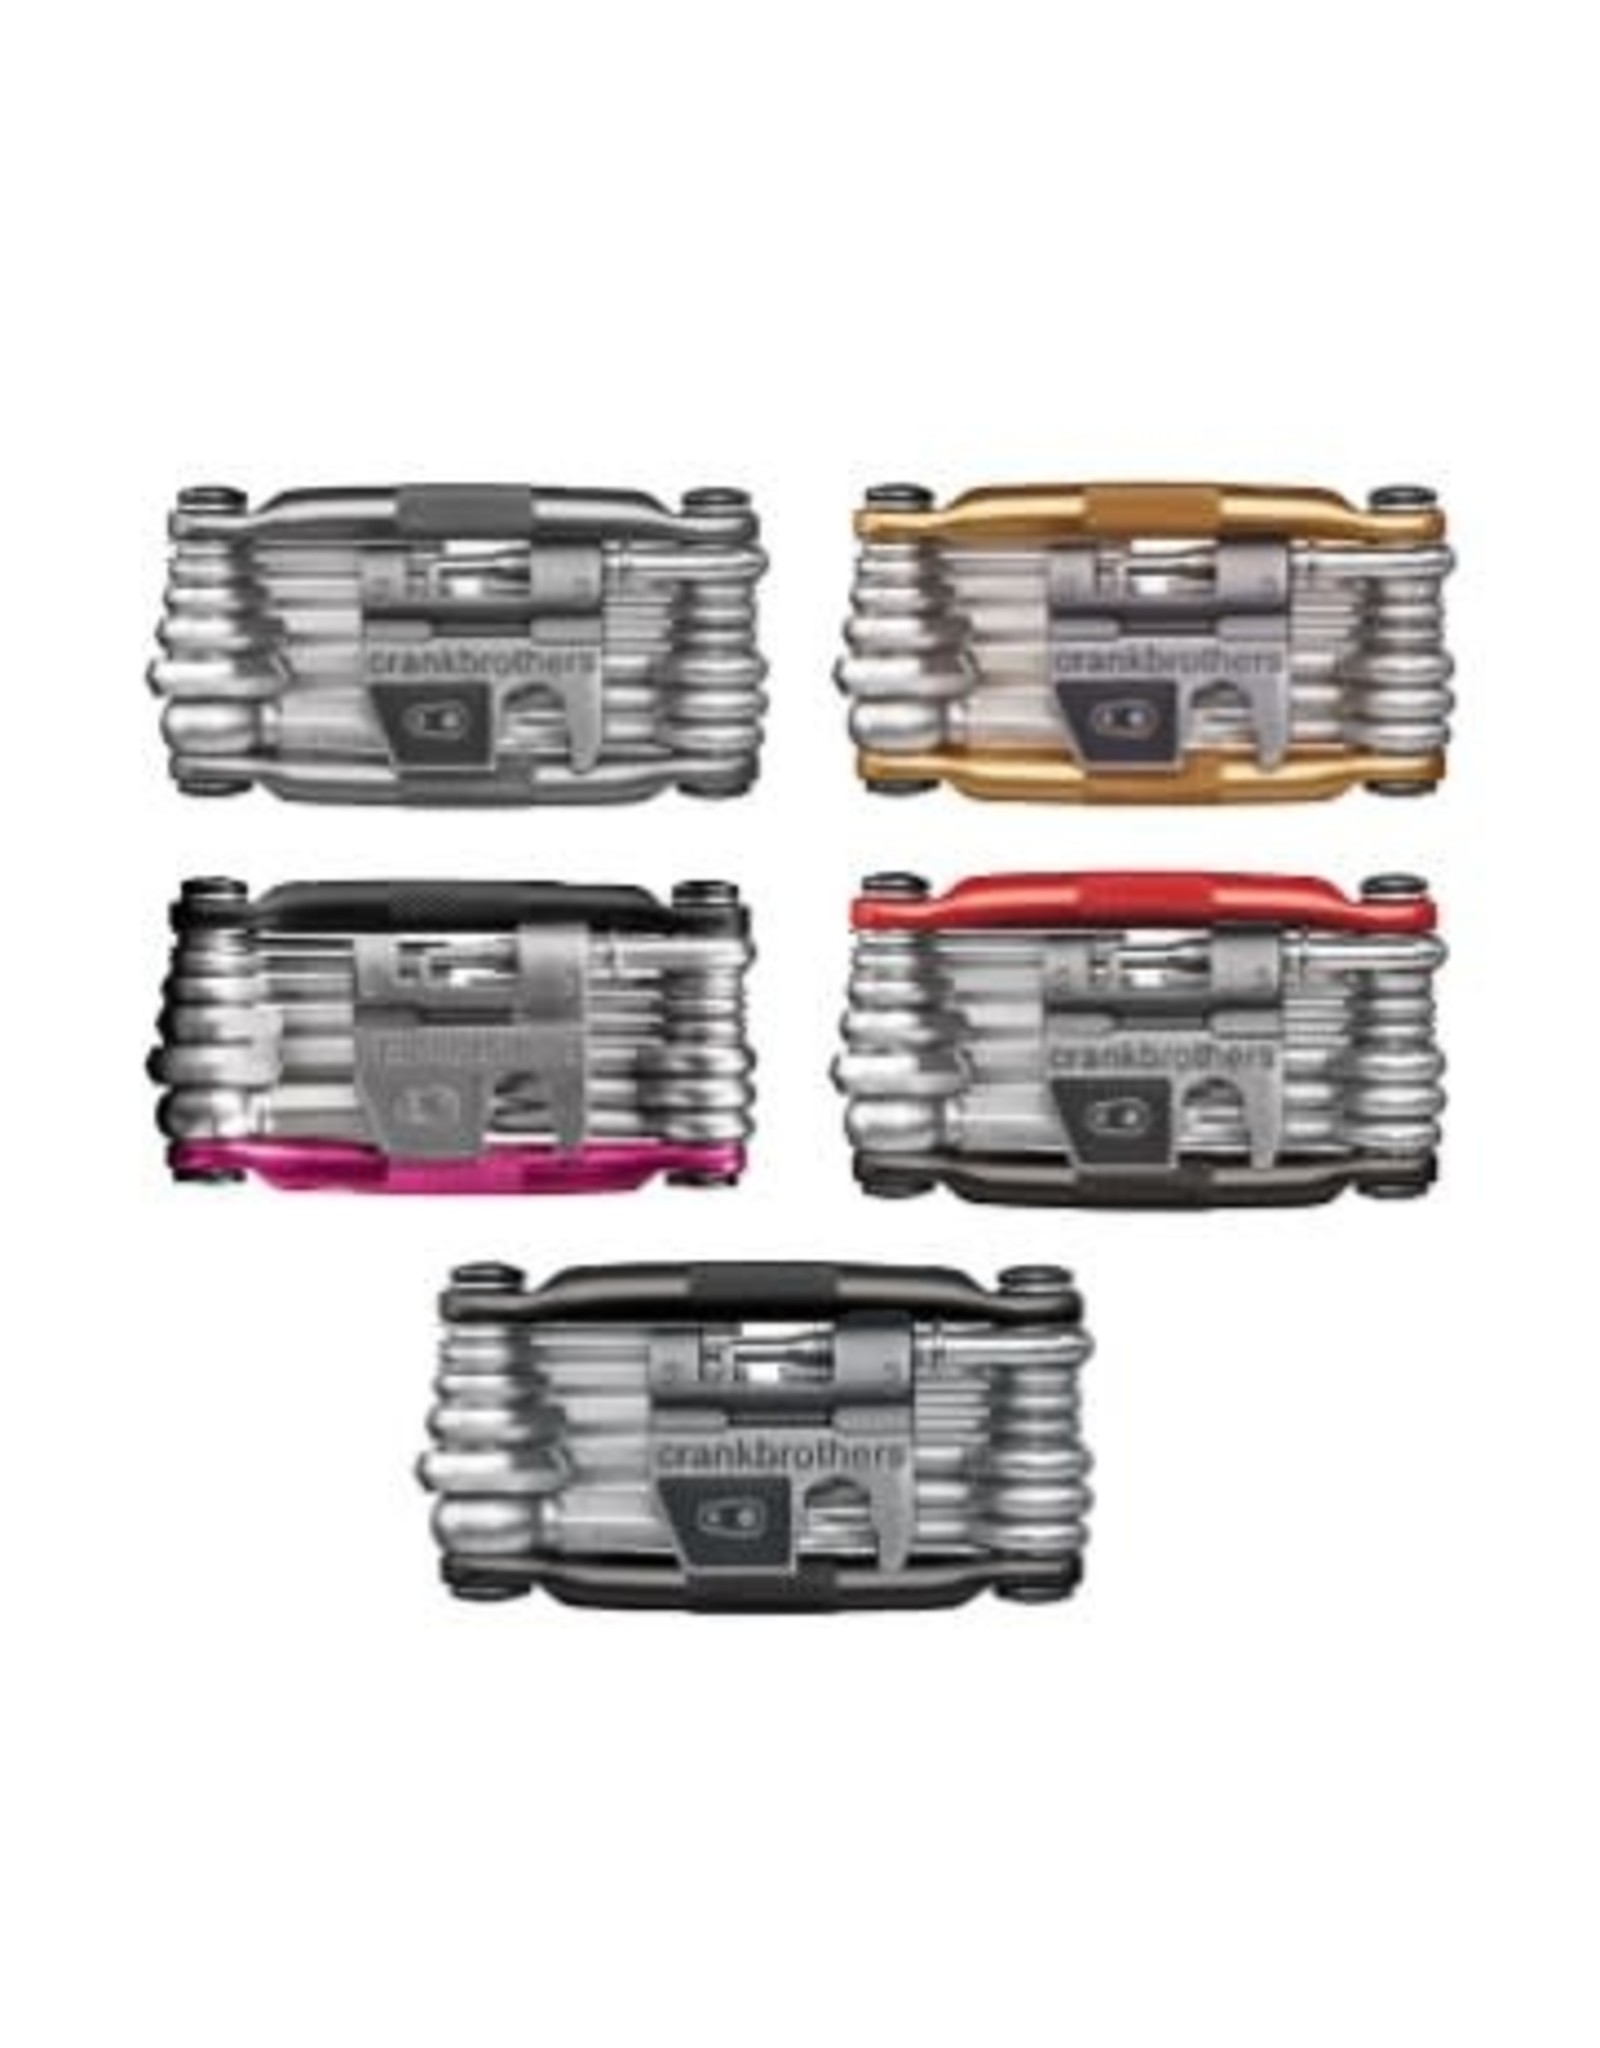 Crank Brothers Multi-outils CB M19